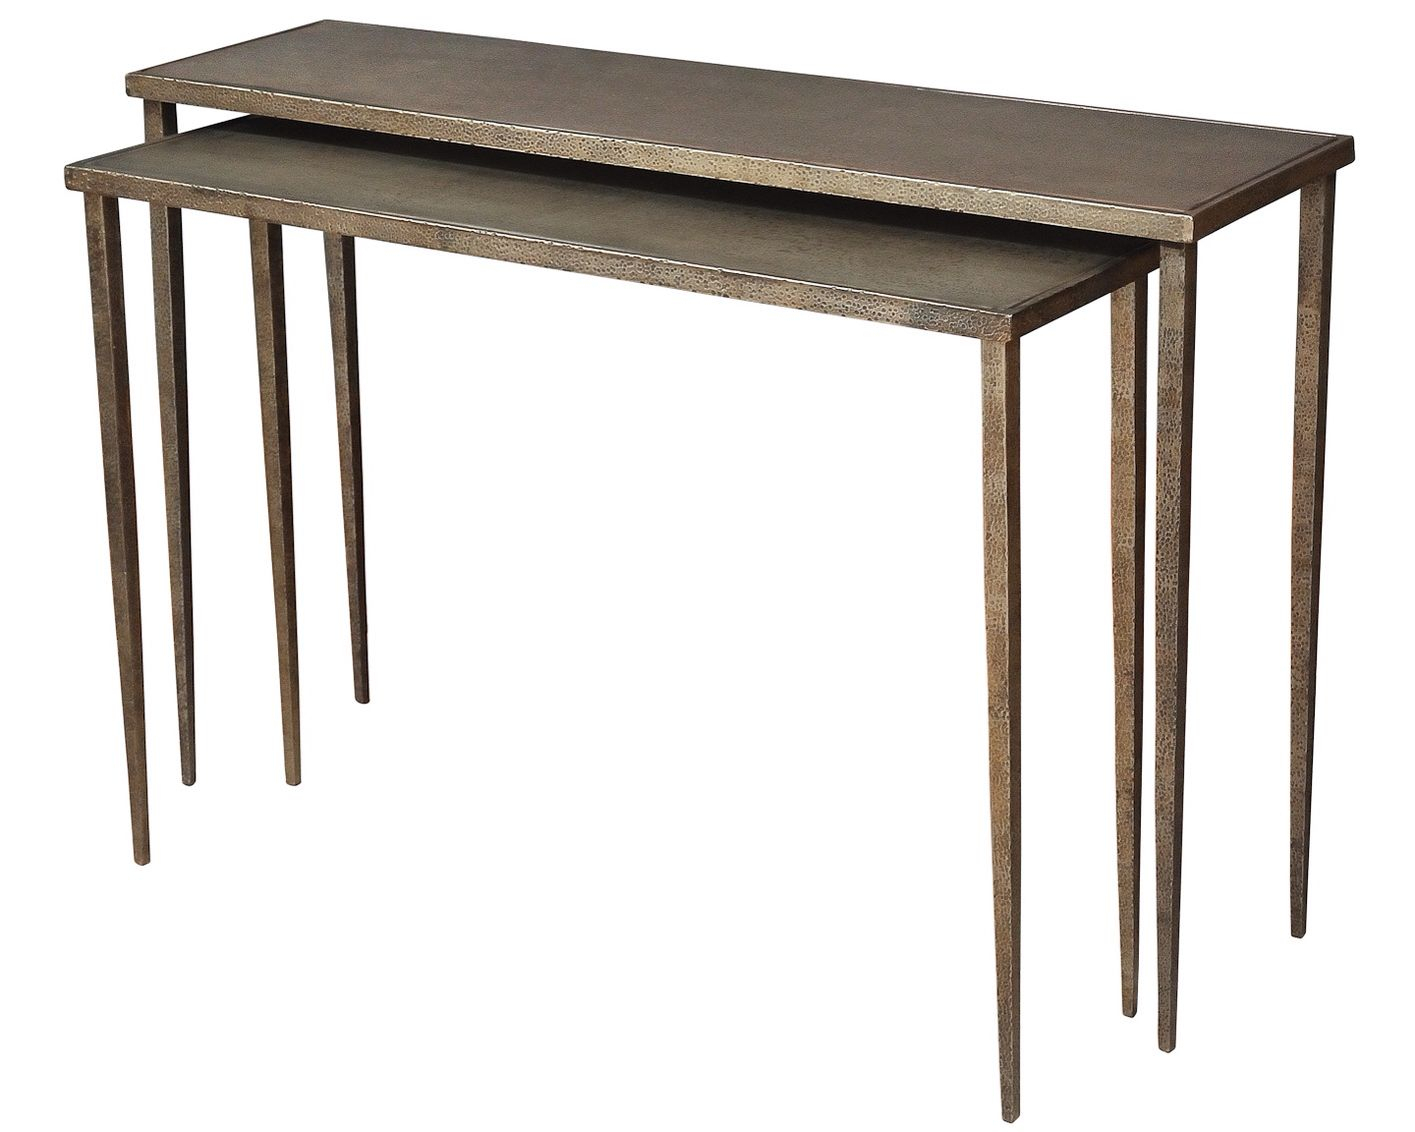 Hammered Sheet Metal Console Tables | My Designs | Pinterest For Silviano 84 Inch Console Tables (View 18 of 30)